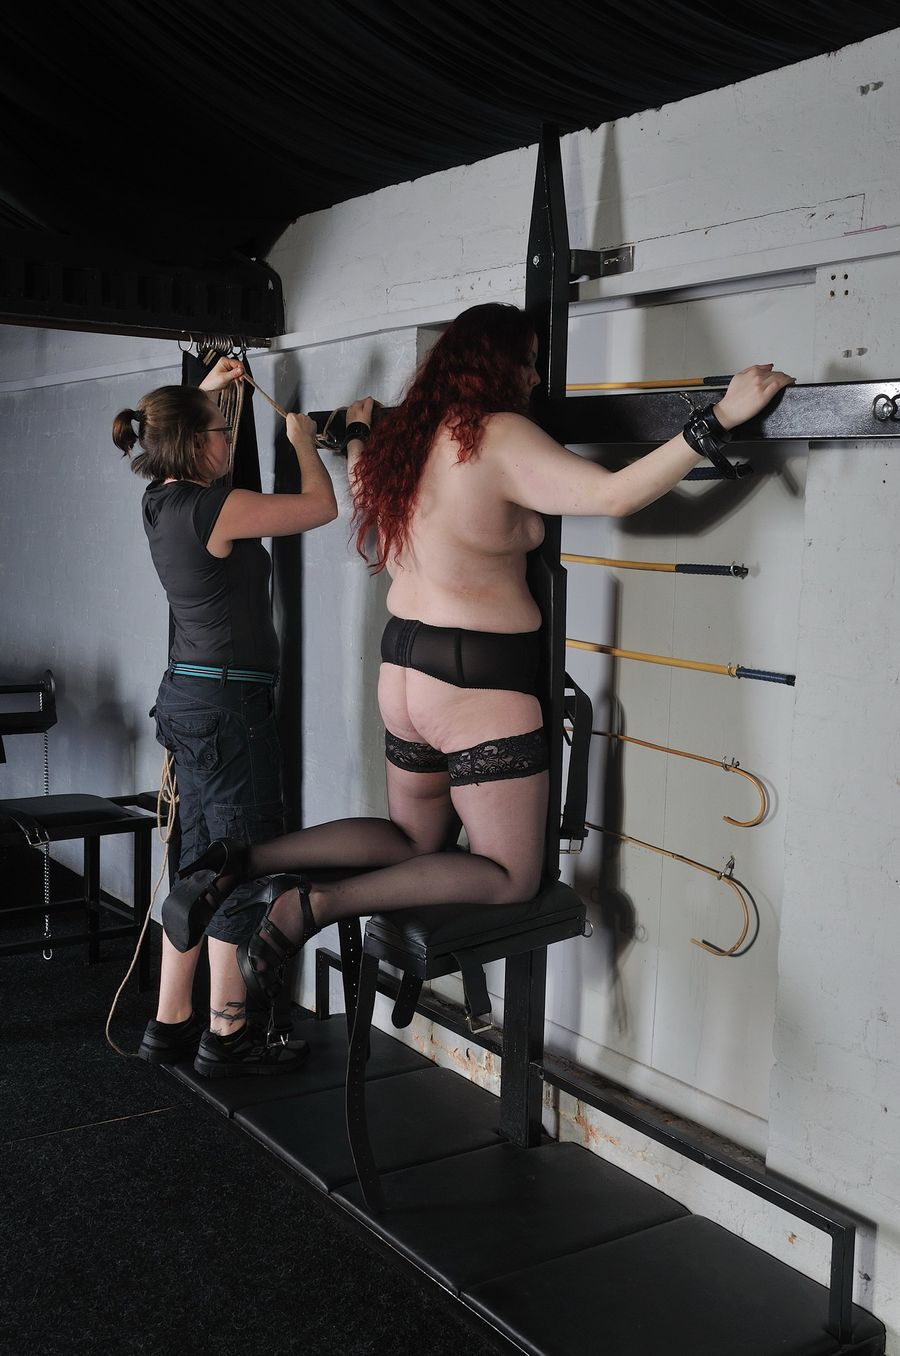 whipping video domination Female